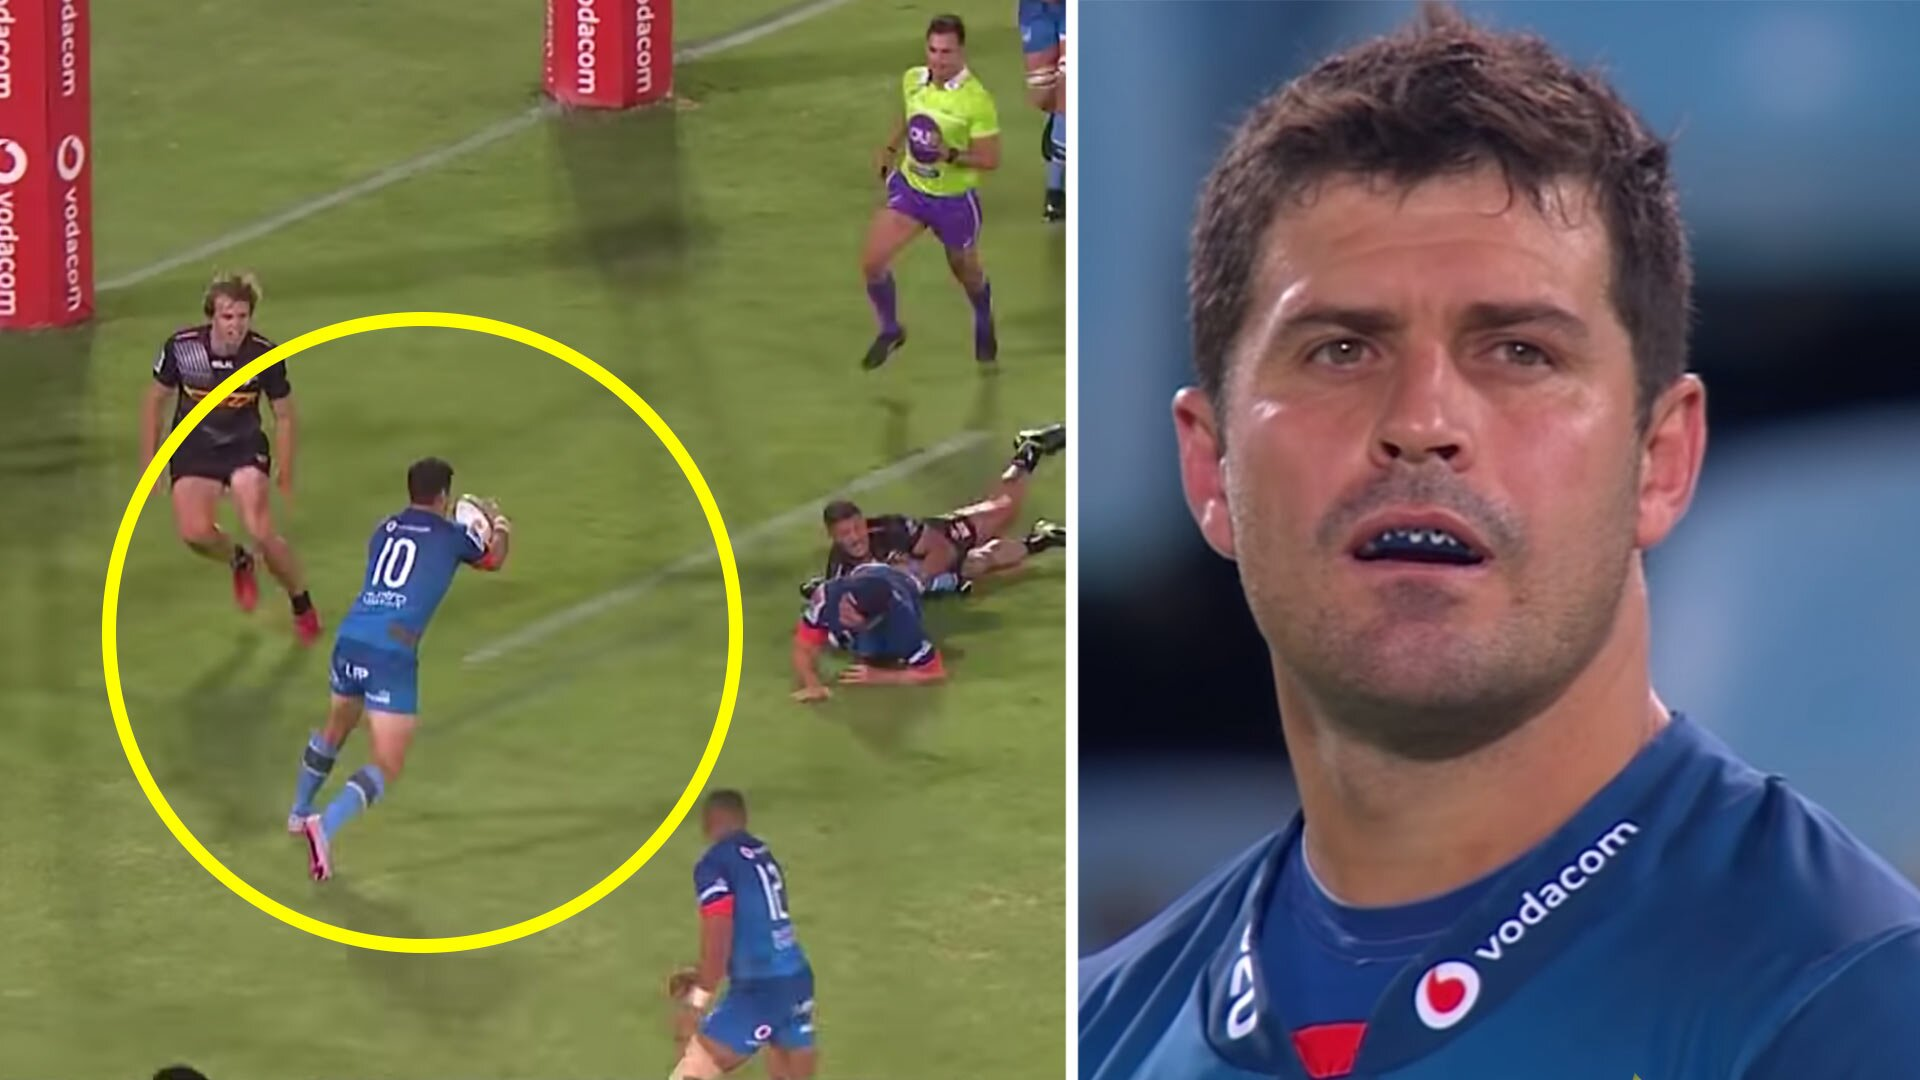 Morne Steyn is the best player on the pitch at 37 with ridiculous skill to set up monster try